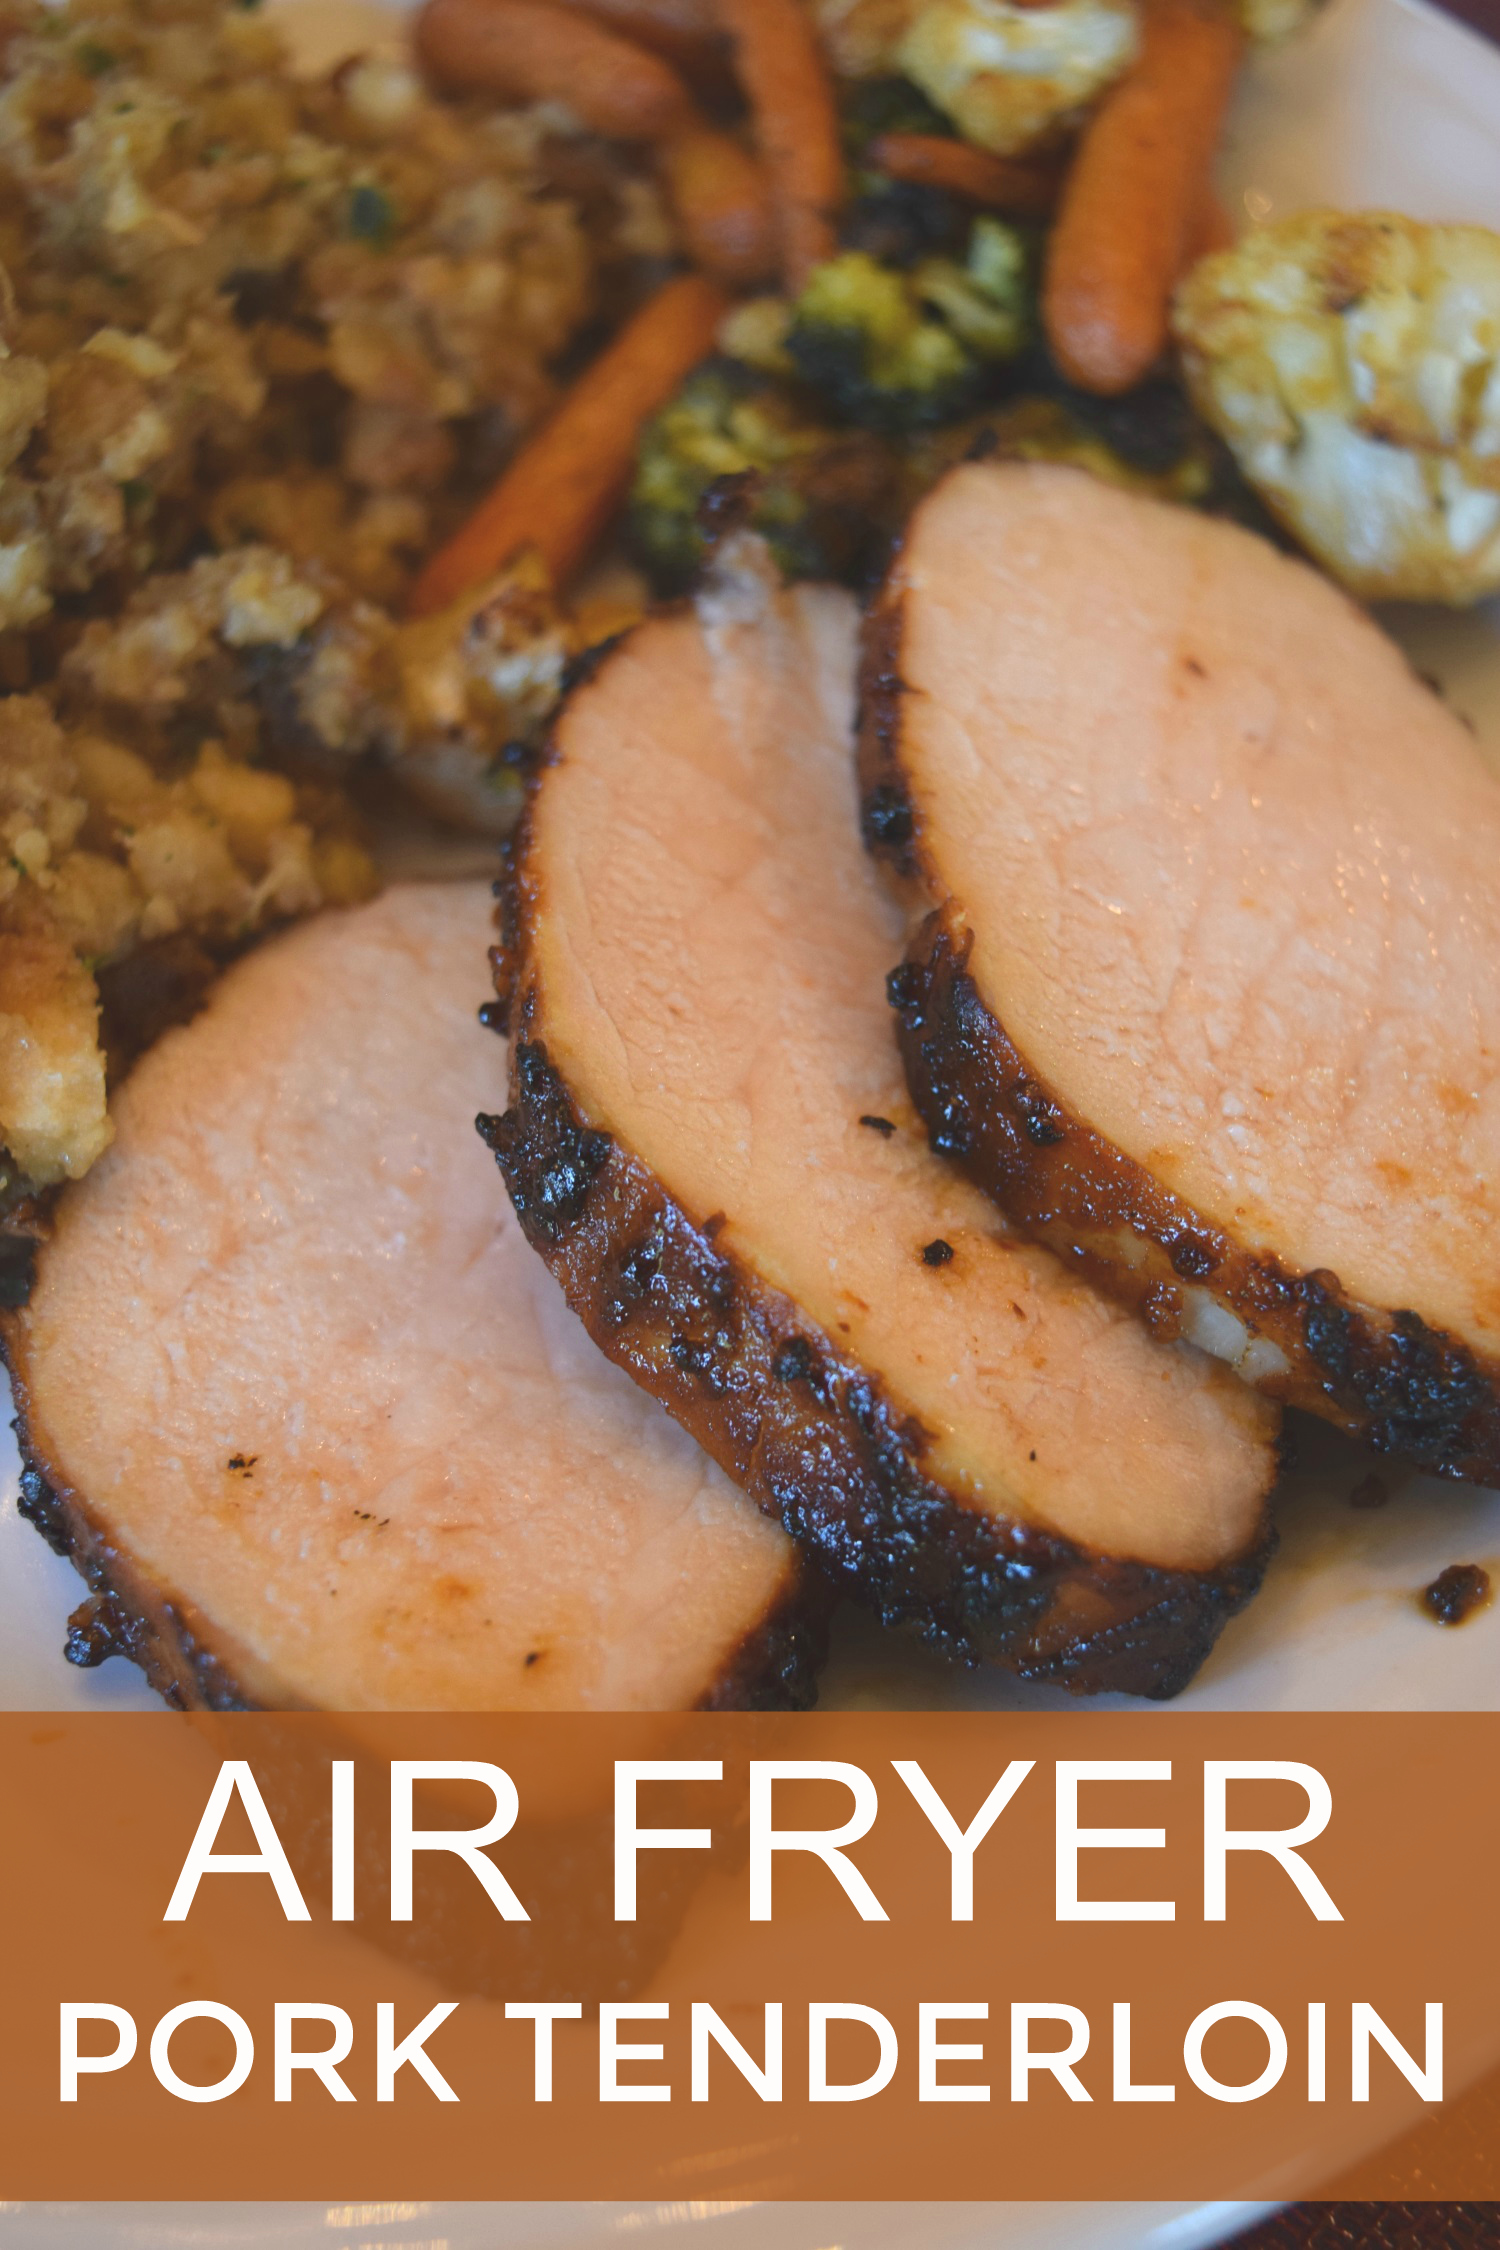 Air fryer pork tenderloin recipe